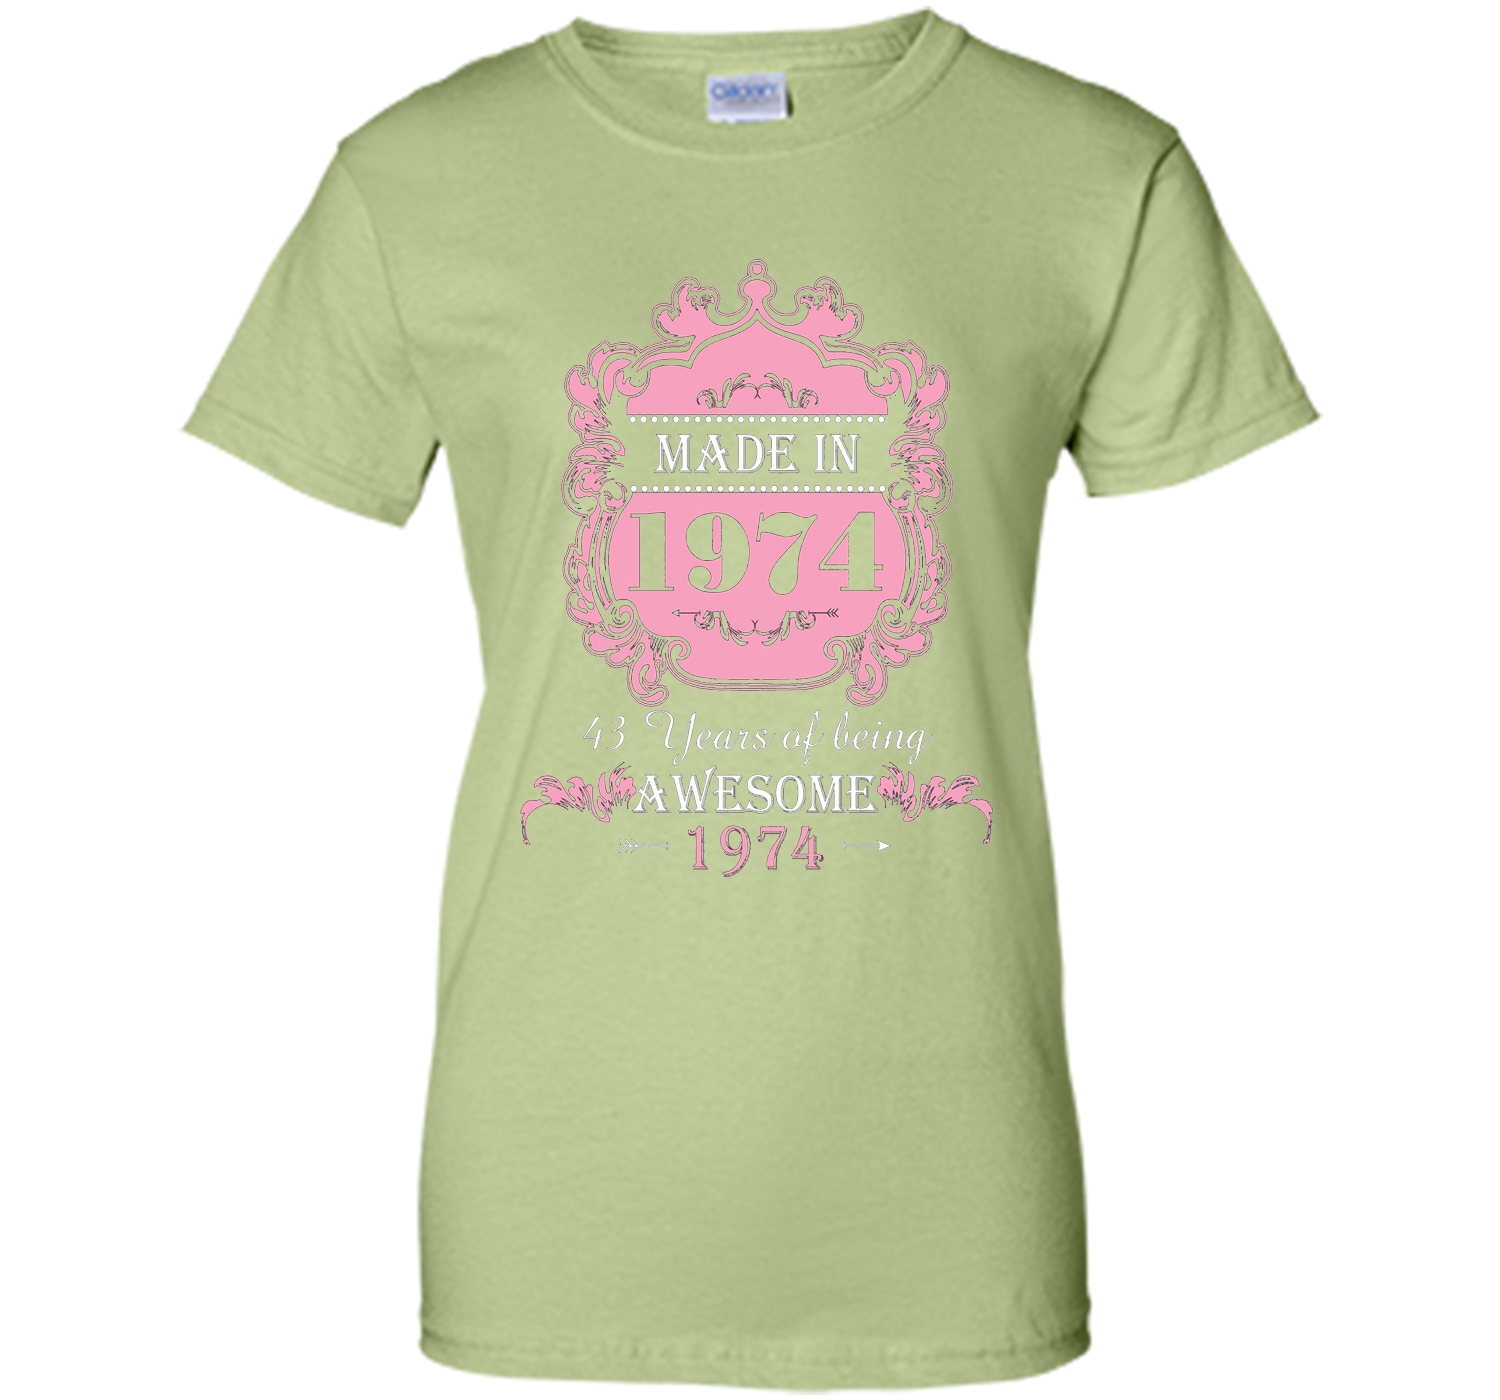 Made In 1974 T Shirt 43 Years Old 43th Birthday Gift